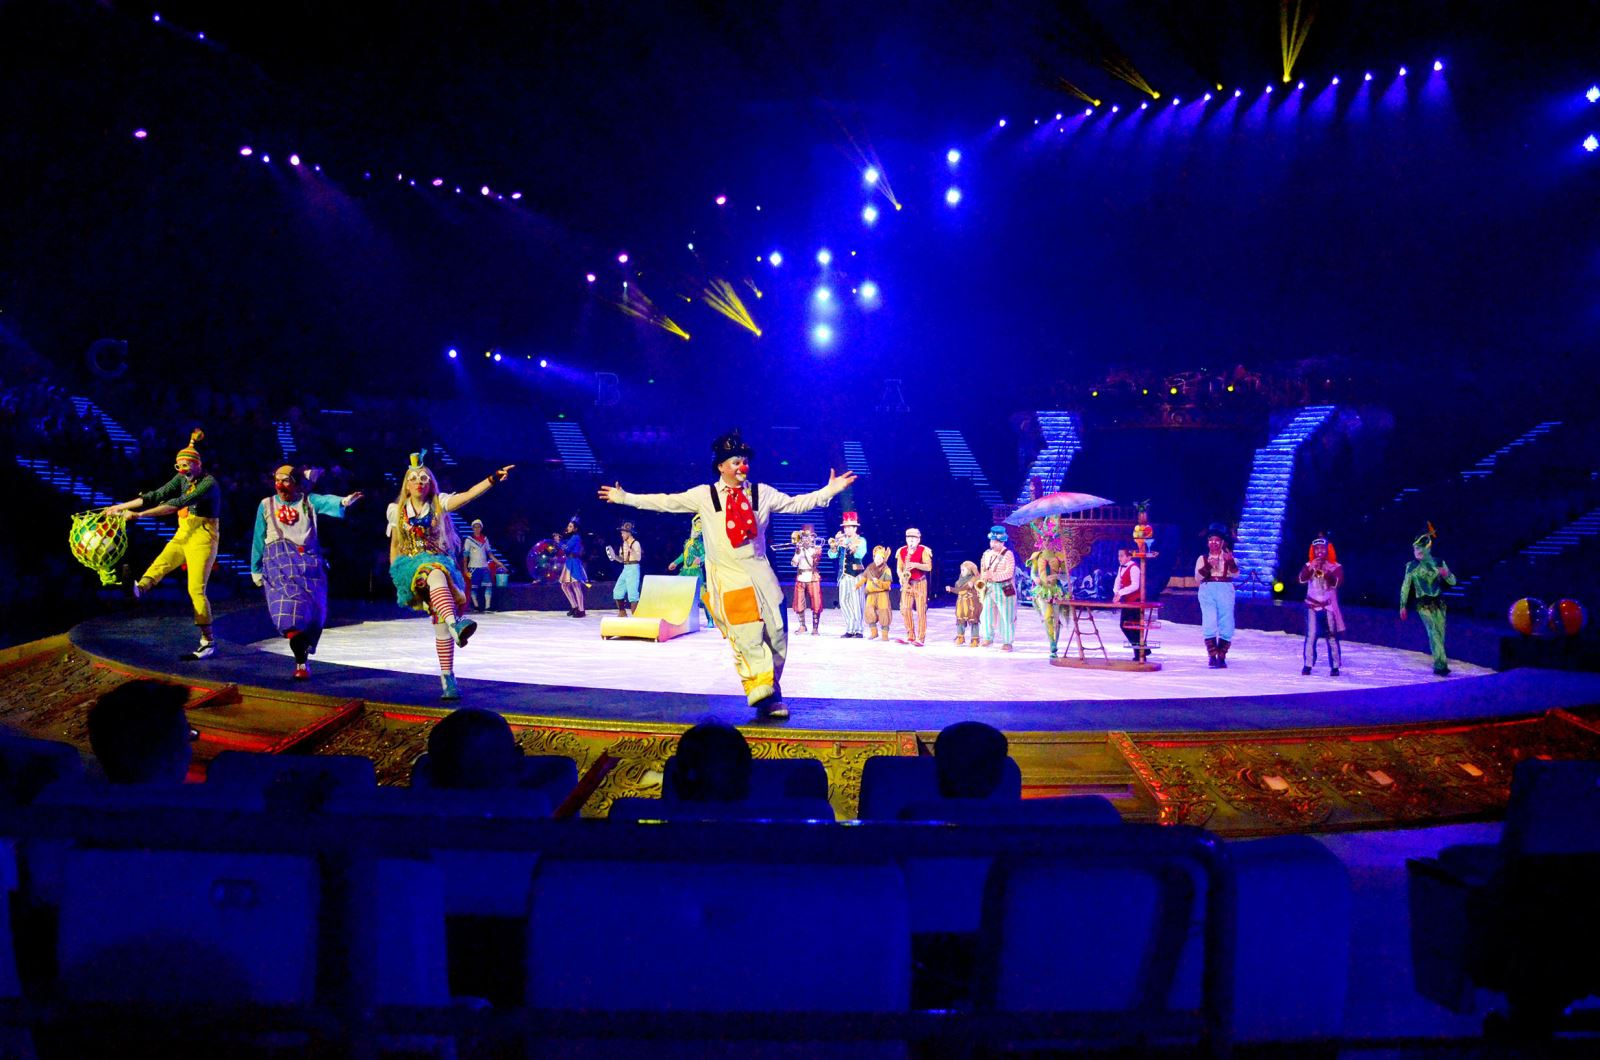 Zhuhai Chimelong Hengqin Theatre Circus Evening Tour with round transfers